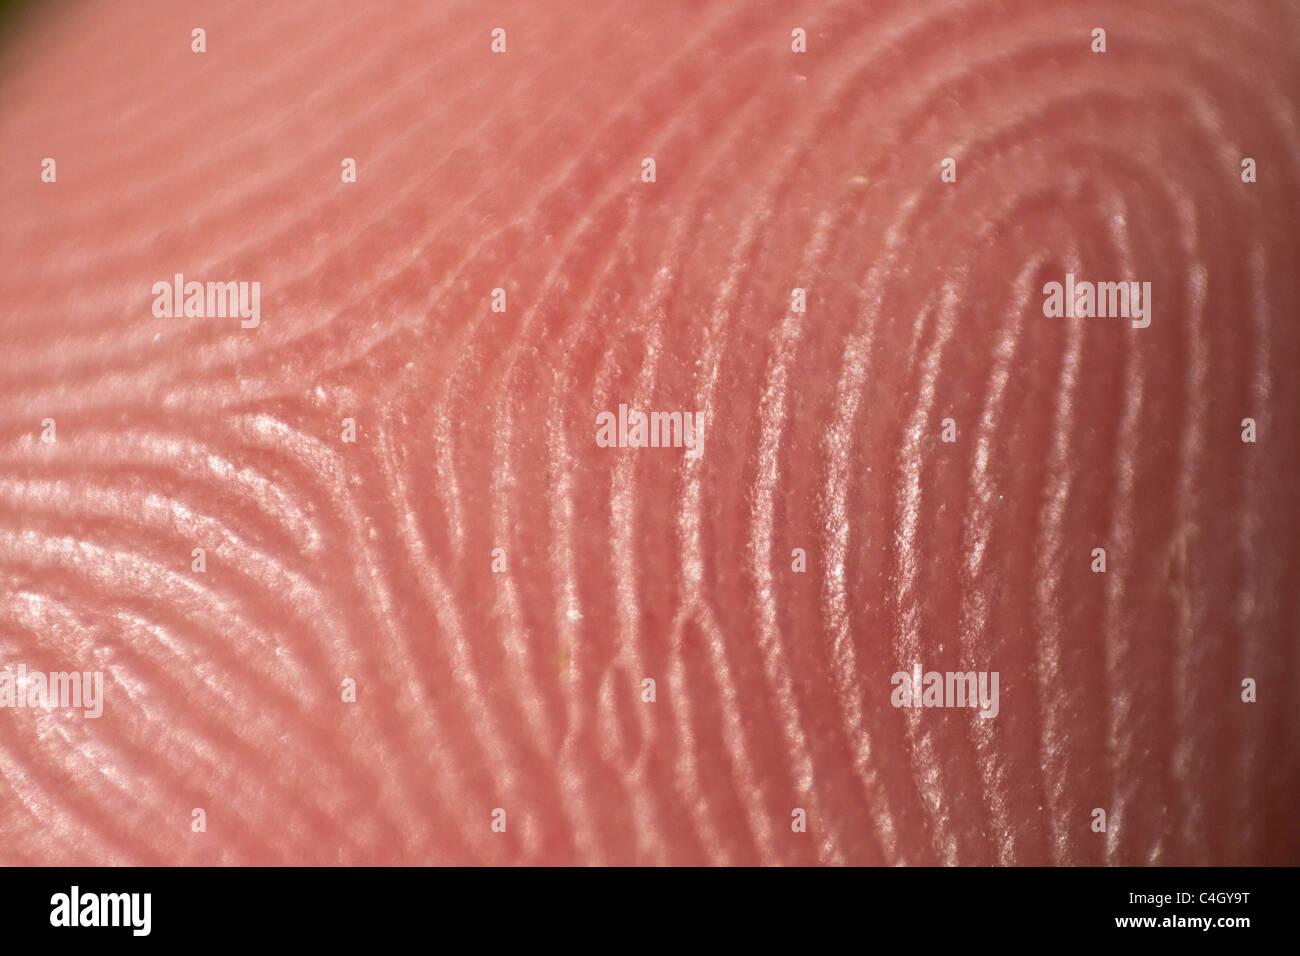 fingerprint - Stock Image